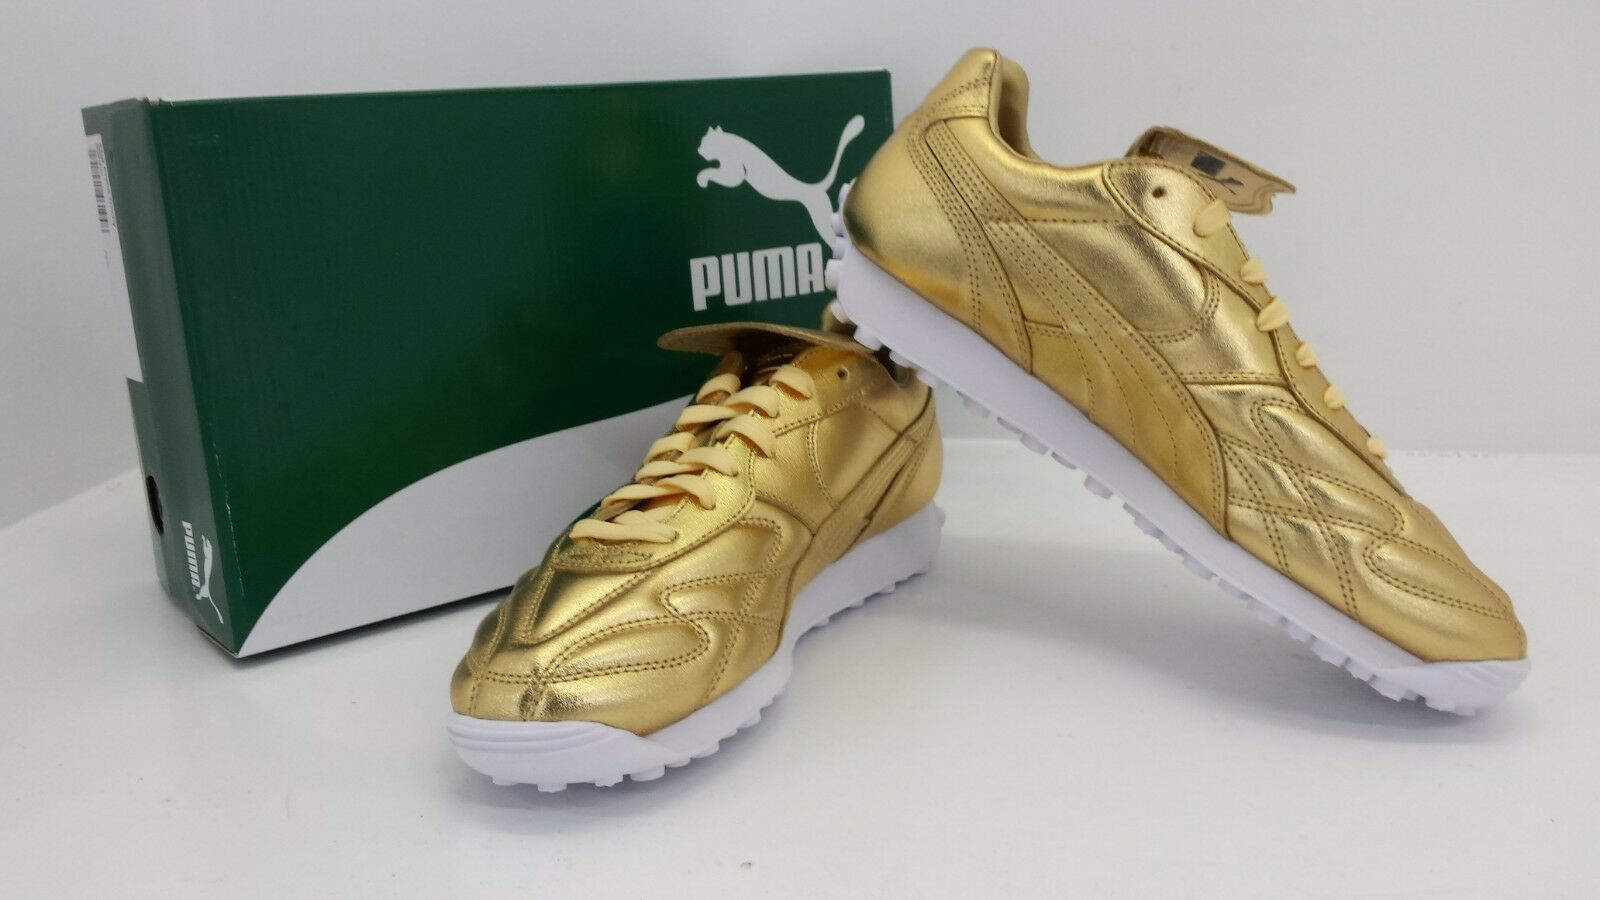 PUMA KING AVANTI TROPHY TROPHY TROPHY SNEAKERS gold 366619 01 - BRAND NEW IN BOX    6c597e